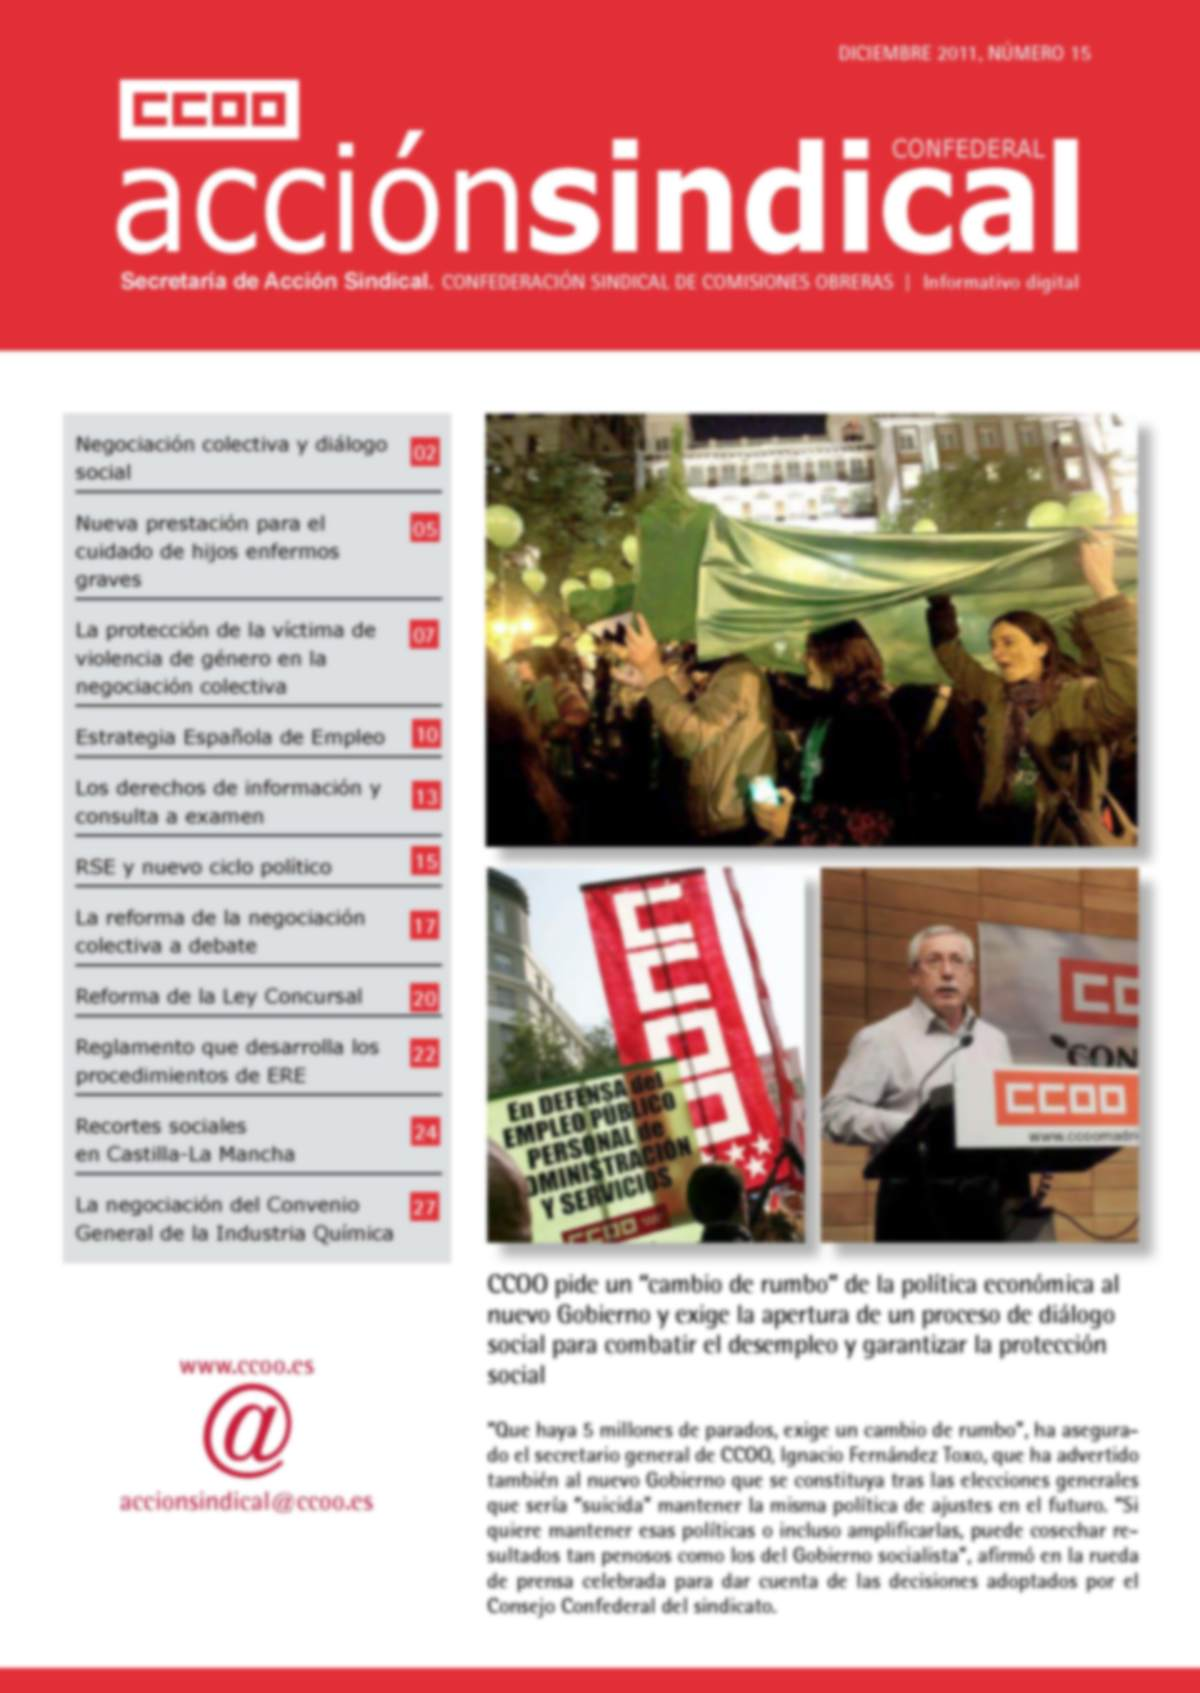 Informativo Digital Acción Sindical Confederal, nº 15